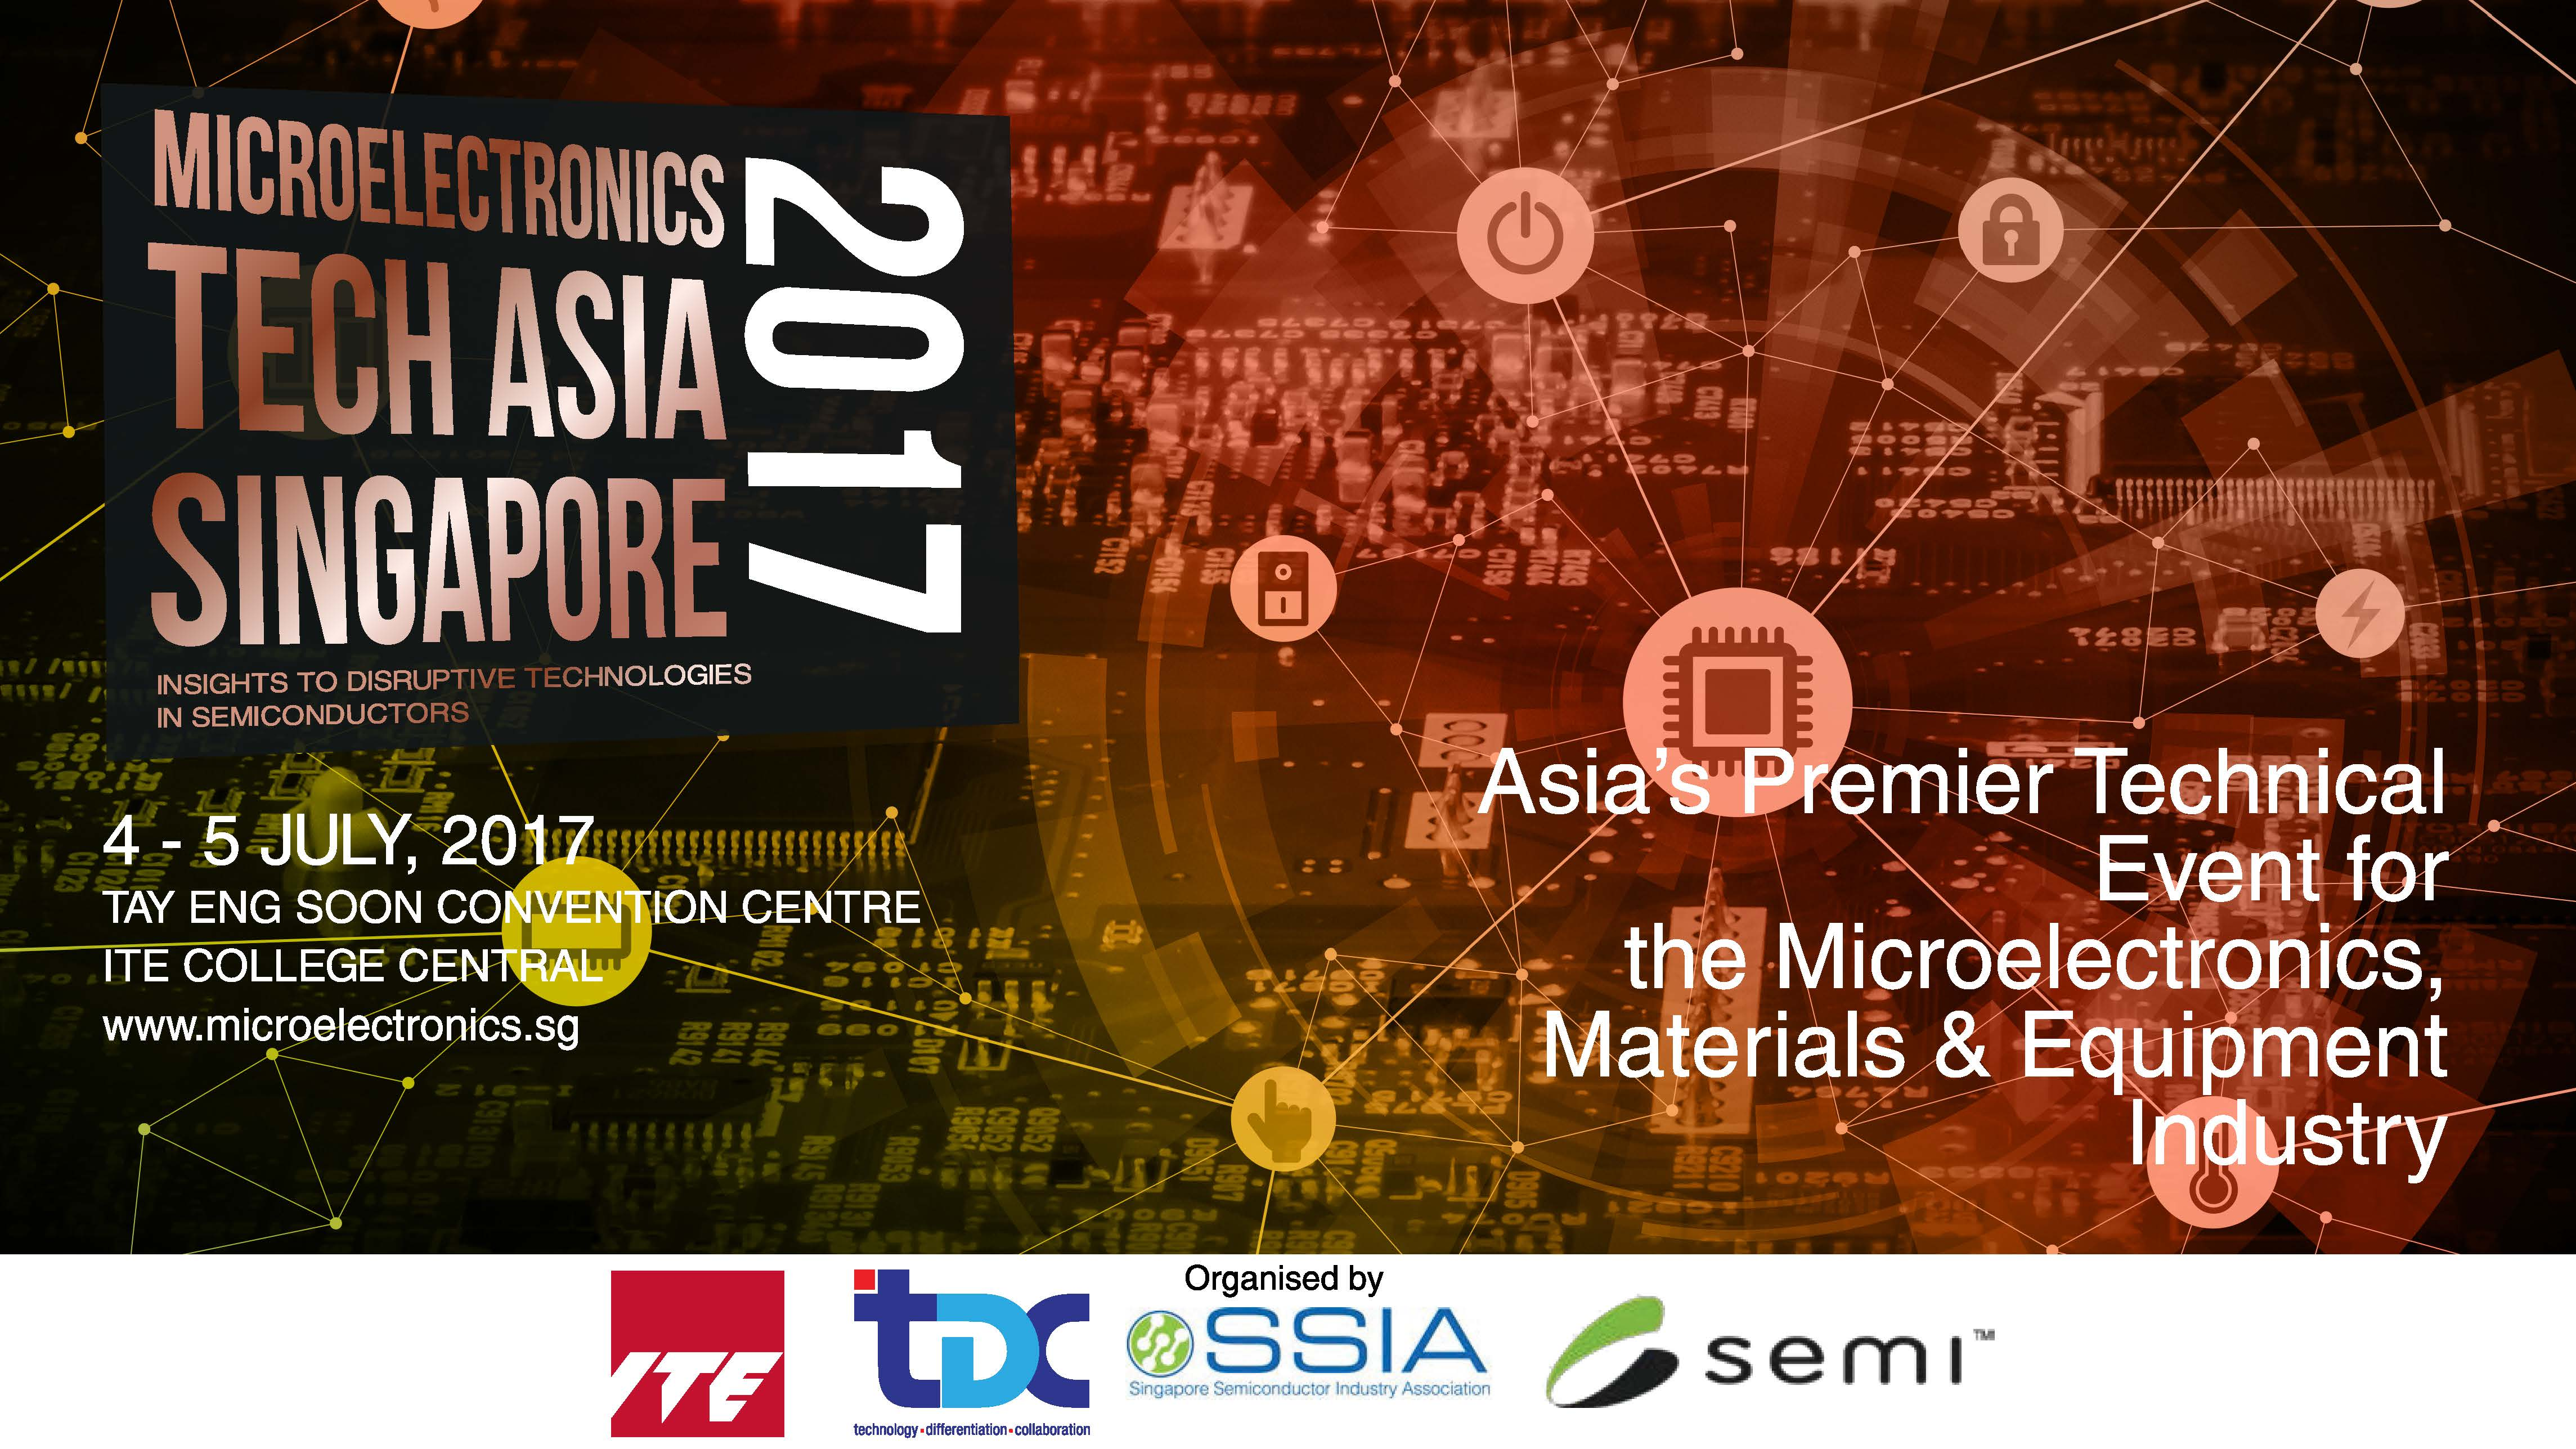 Visit Us at MICROELECTRONICS TECH ASIA SINGAPORE 2017 Conference